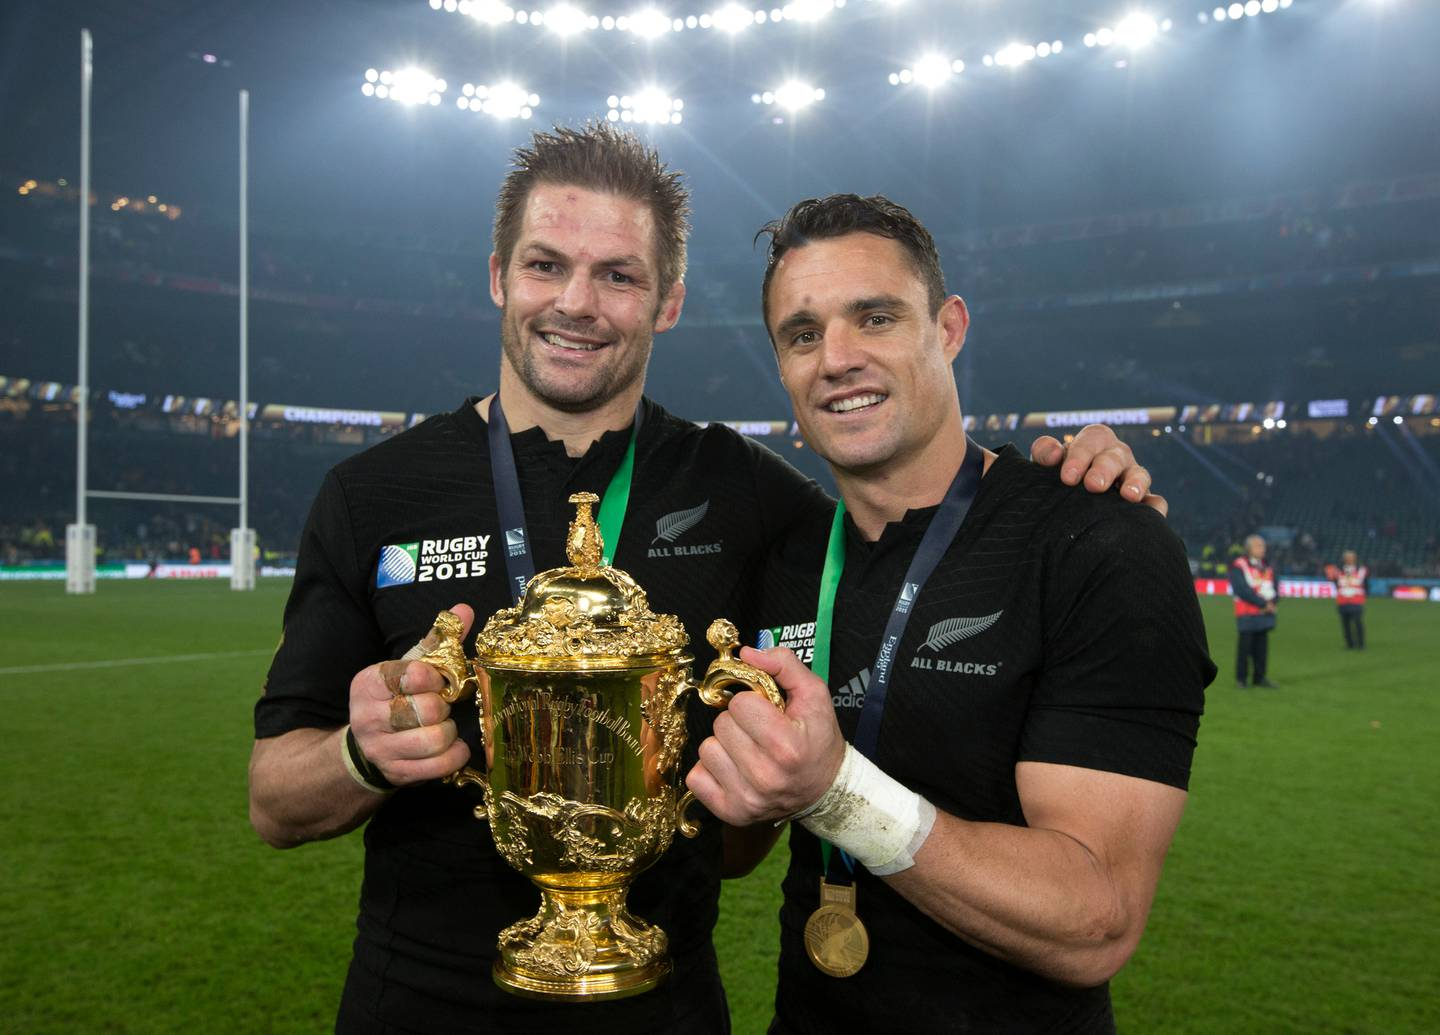 Richie McCaw and Daniel Carter with the Webb Ellis Cup after winning the 2015 Rugby World Cup Final. Photo / Brett Phibbs